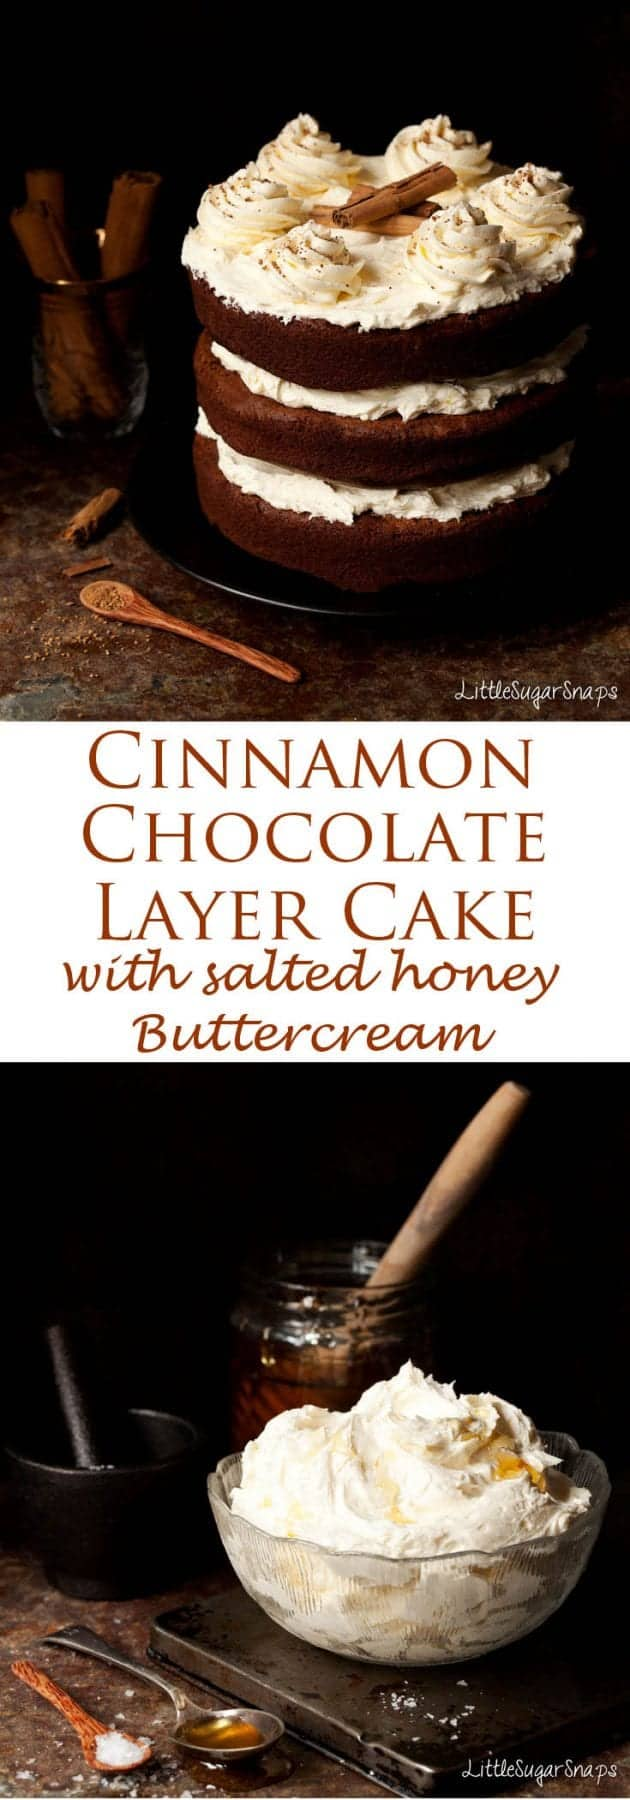 Intensely chocolatey with a hint of spice this soft, fudgy Cinnamon Chocolate Cake pairs so well with the piquant, mellow sweetness of the salted honey buttercream.